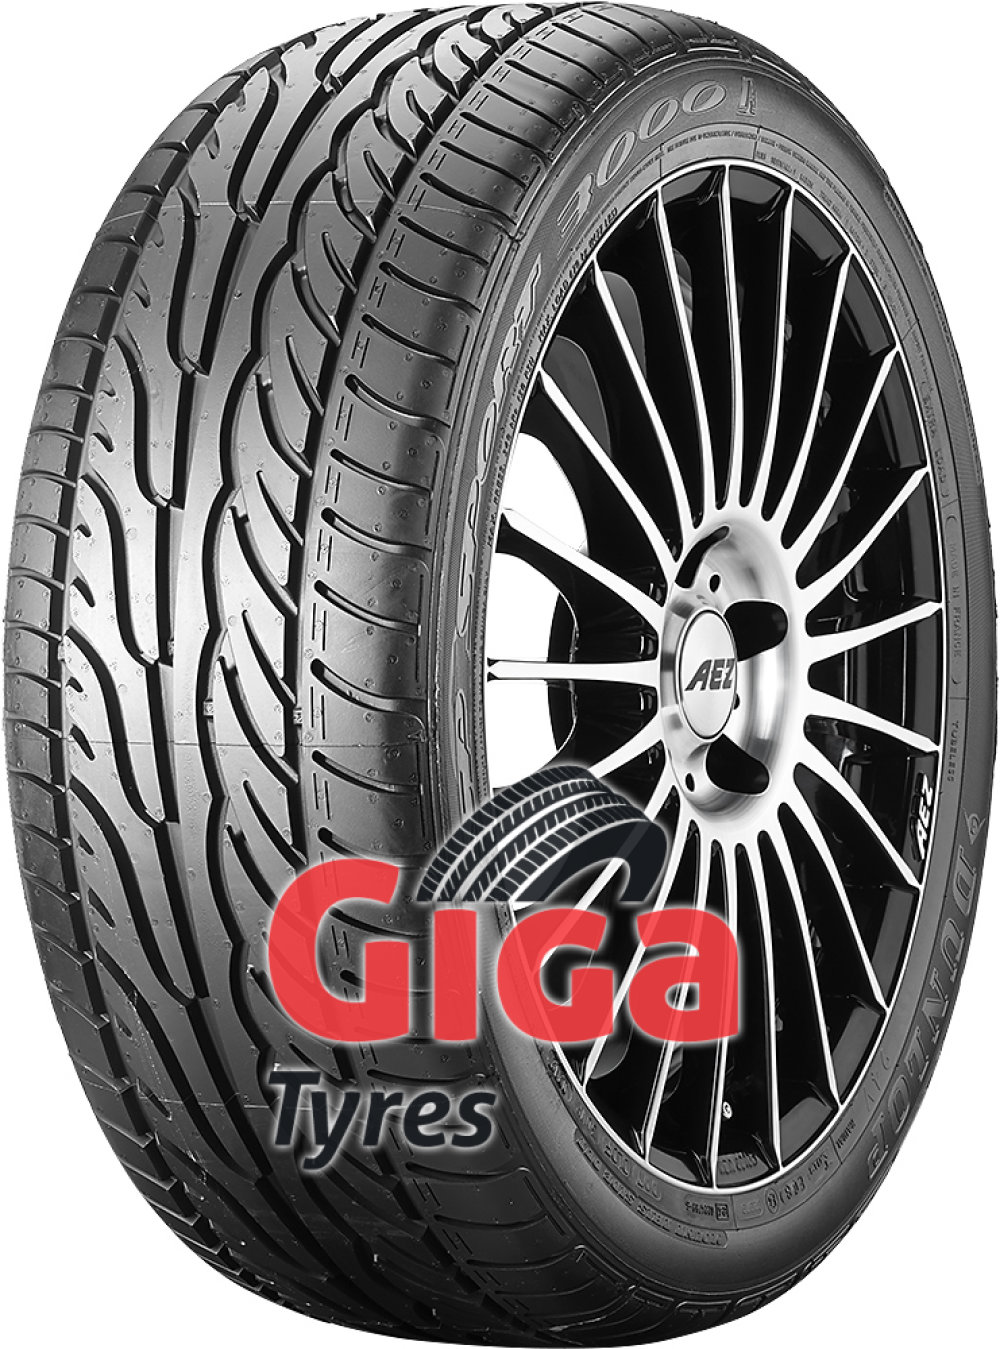 Dunlop SP Sport 3000A ( 215/50 R17 91V with rim protection (MFS) )